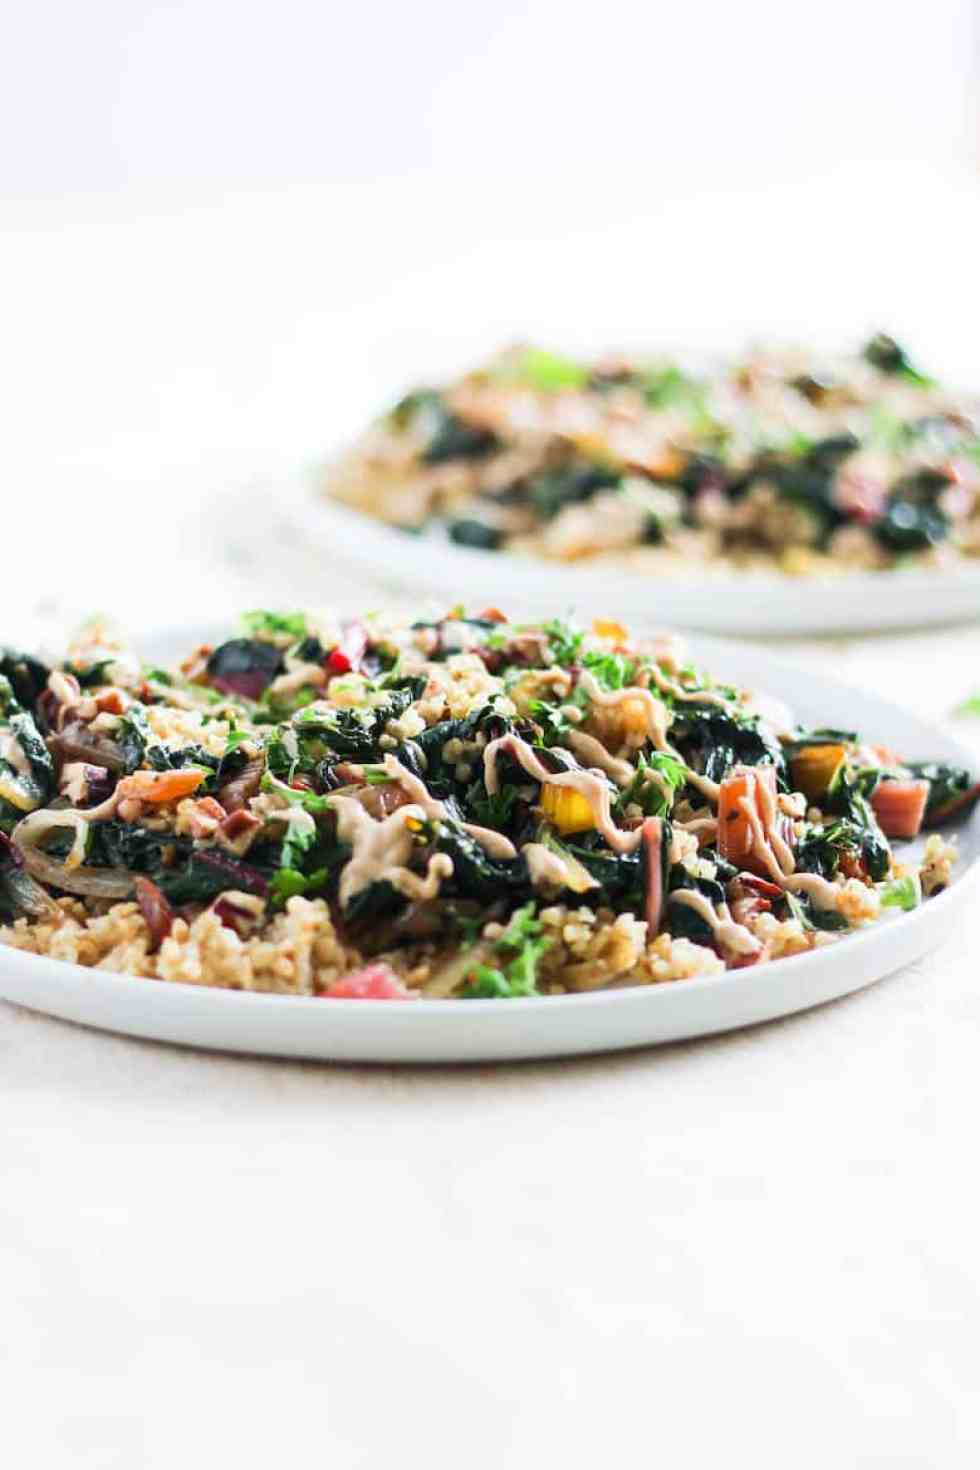 straigt-on shot of toasted freekeh with rainbow chard and tahini sauce on white plate against white background.